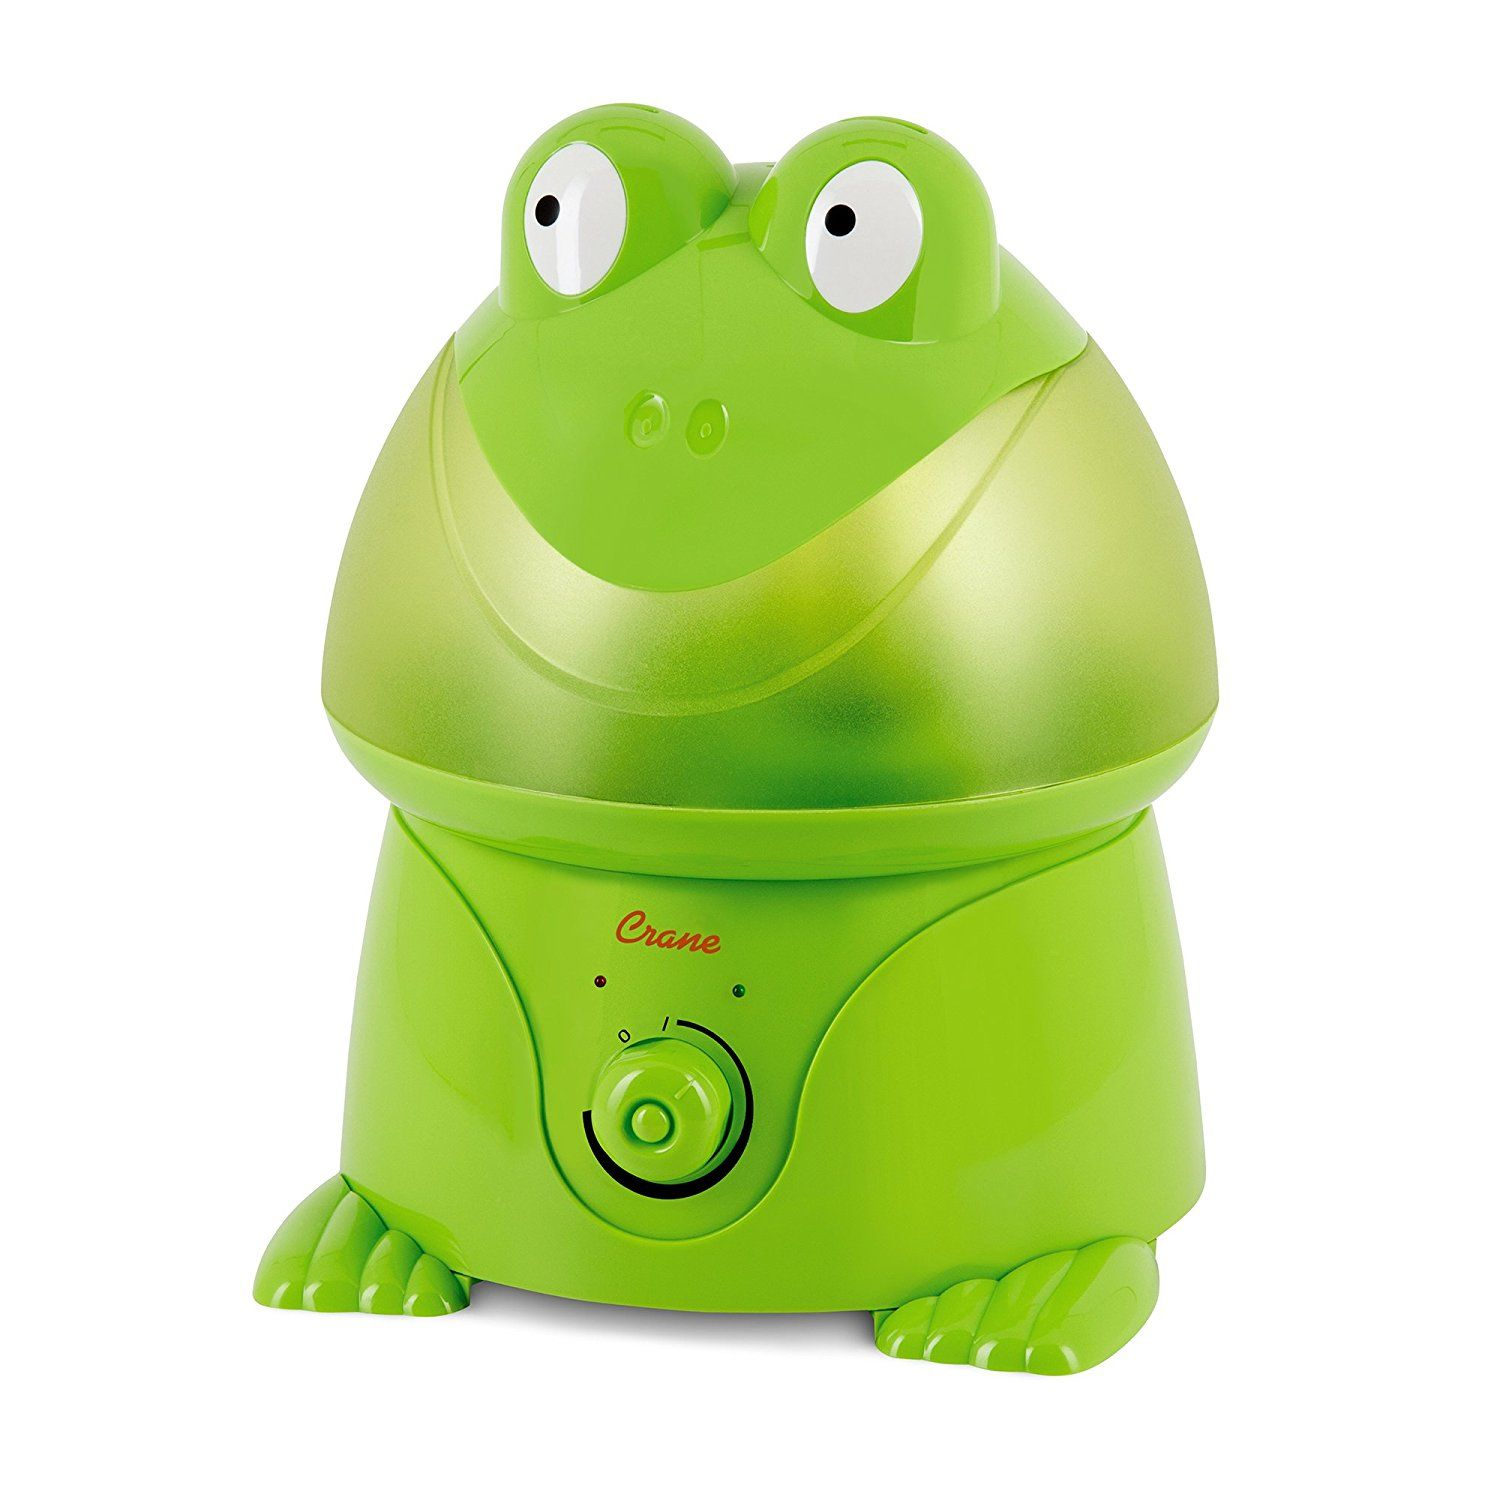 Best performing Humidifier Ultrasonic cool mist